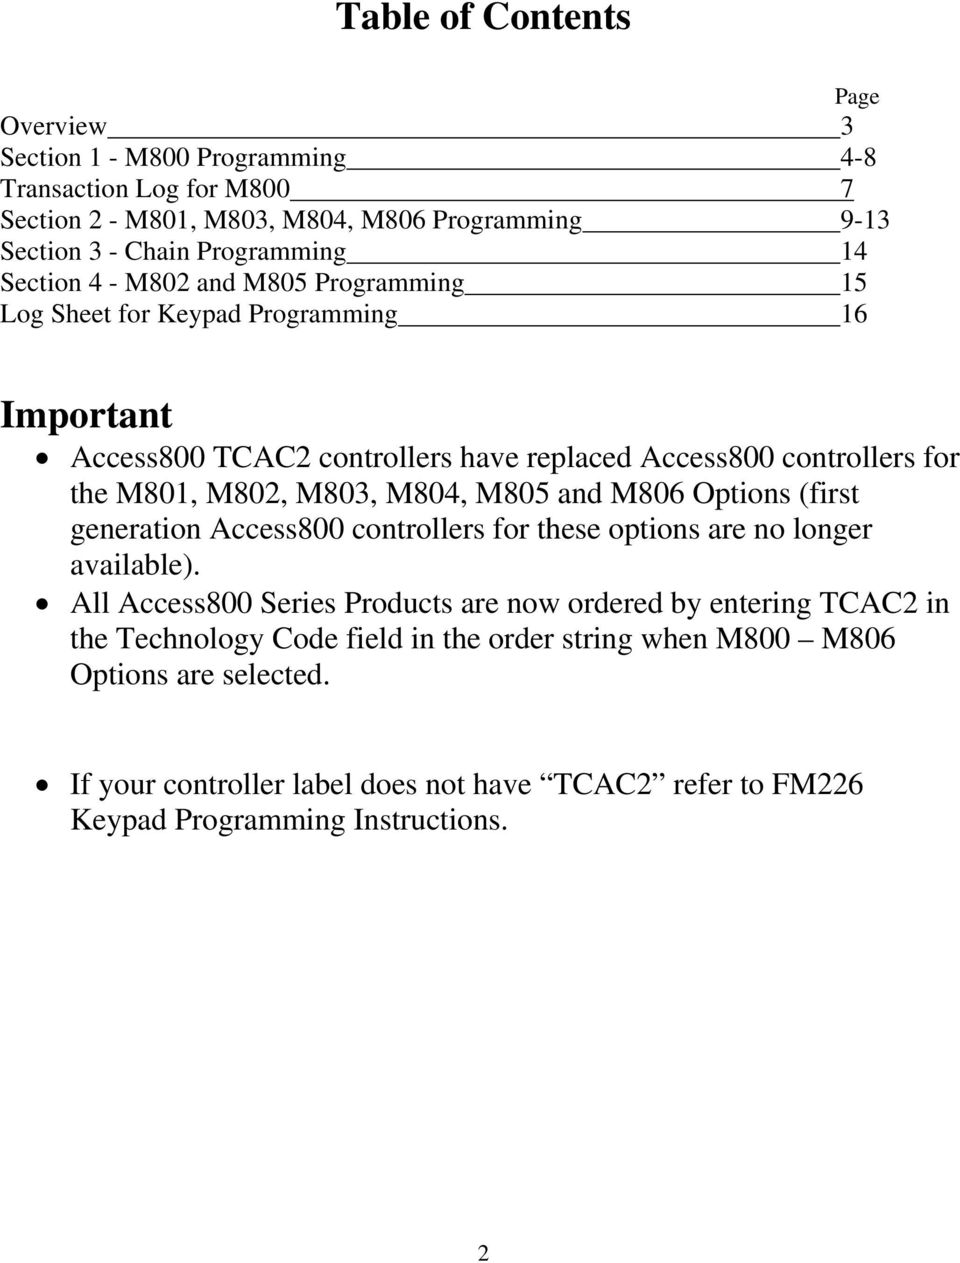 Keypad Programming Instructions For The Access 800 Tcac2 Series Electronic Door Lock Besides Key Information Icon In Addition M803 M804 M805 And M806 Options First Generation Access800 Controllers These